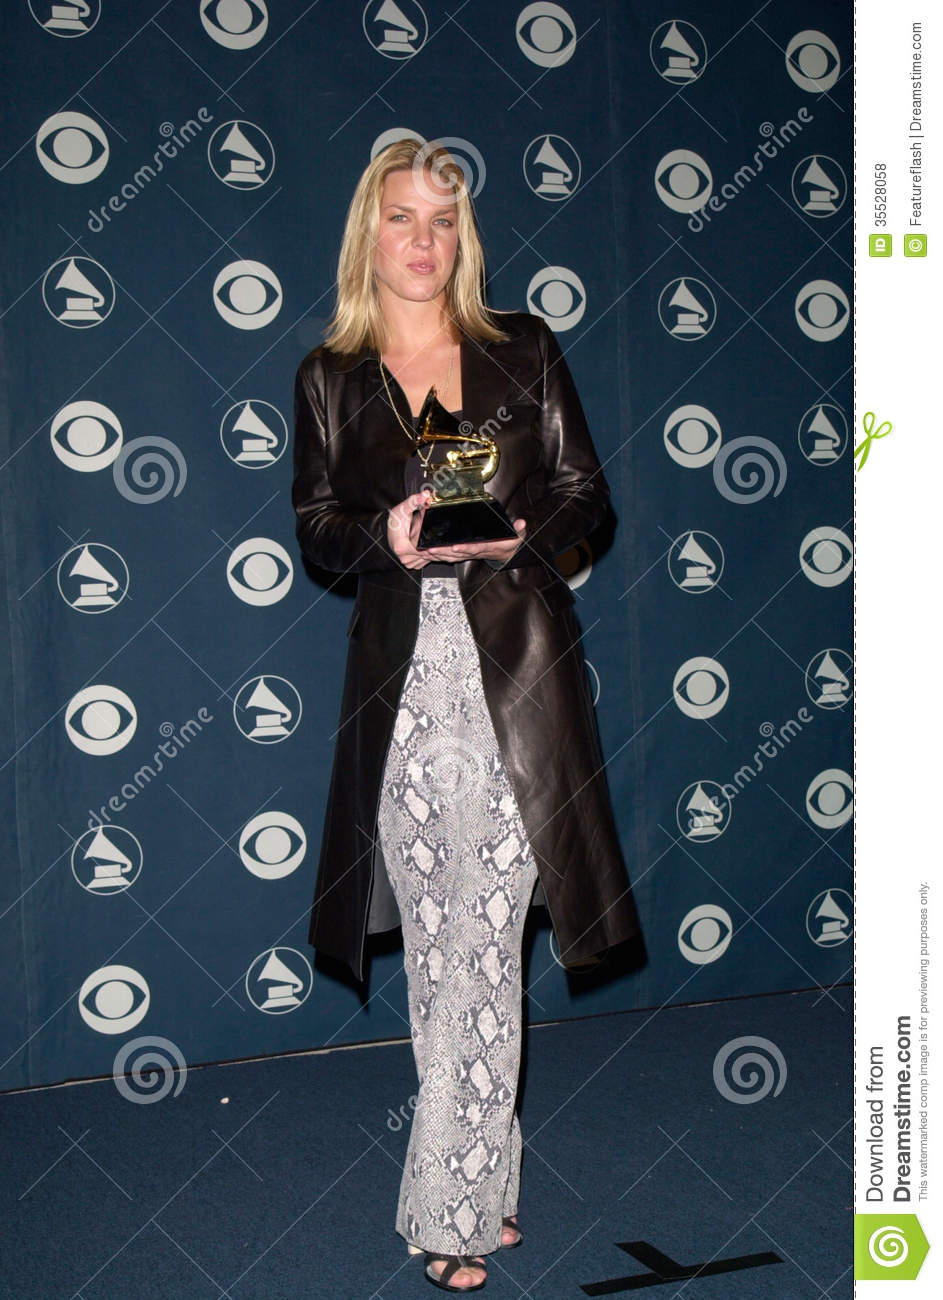 23FEB2000: Singer DIANA KRALL at the 42nd Annual Grammy Awards in Los ...